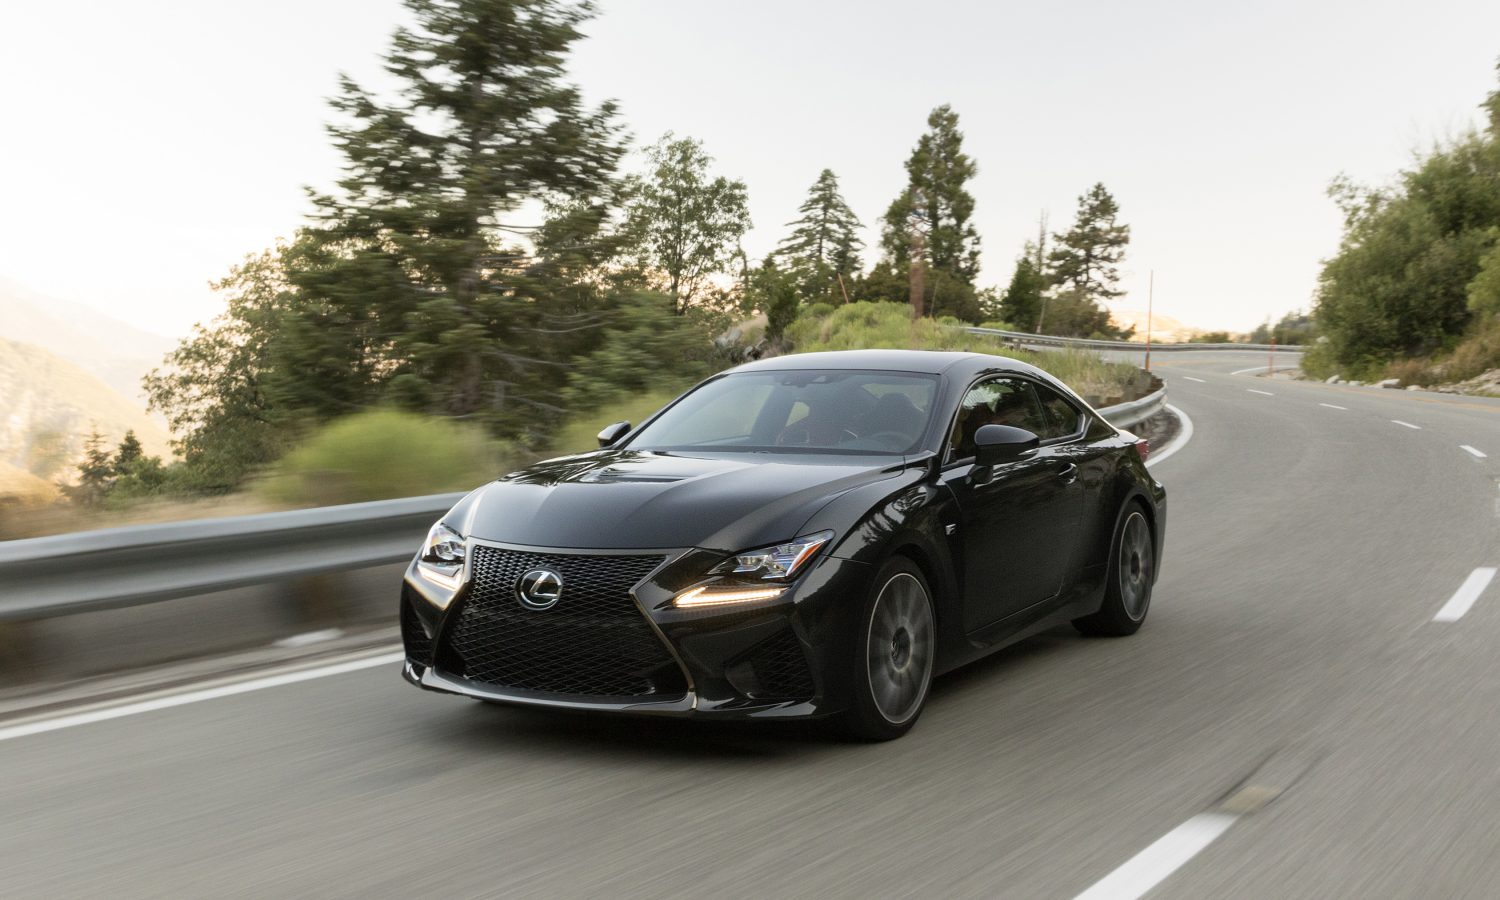 2018 Lexus RC F: Designed for Luxury And Performance - Lexus USA